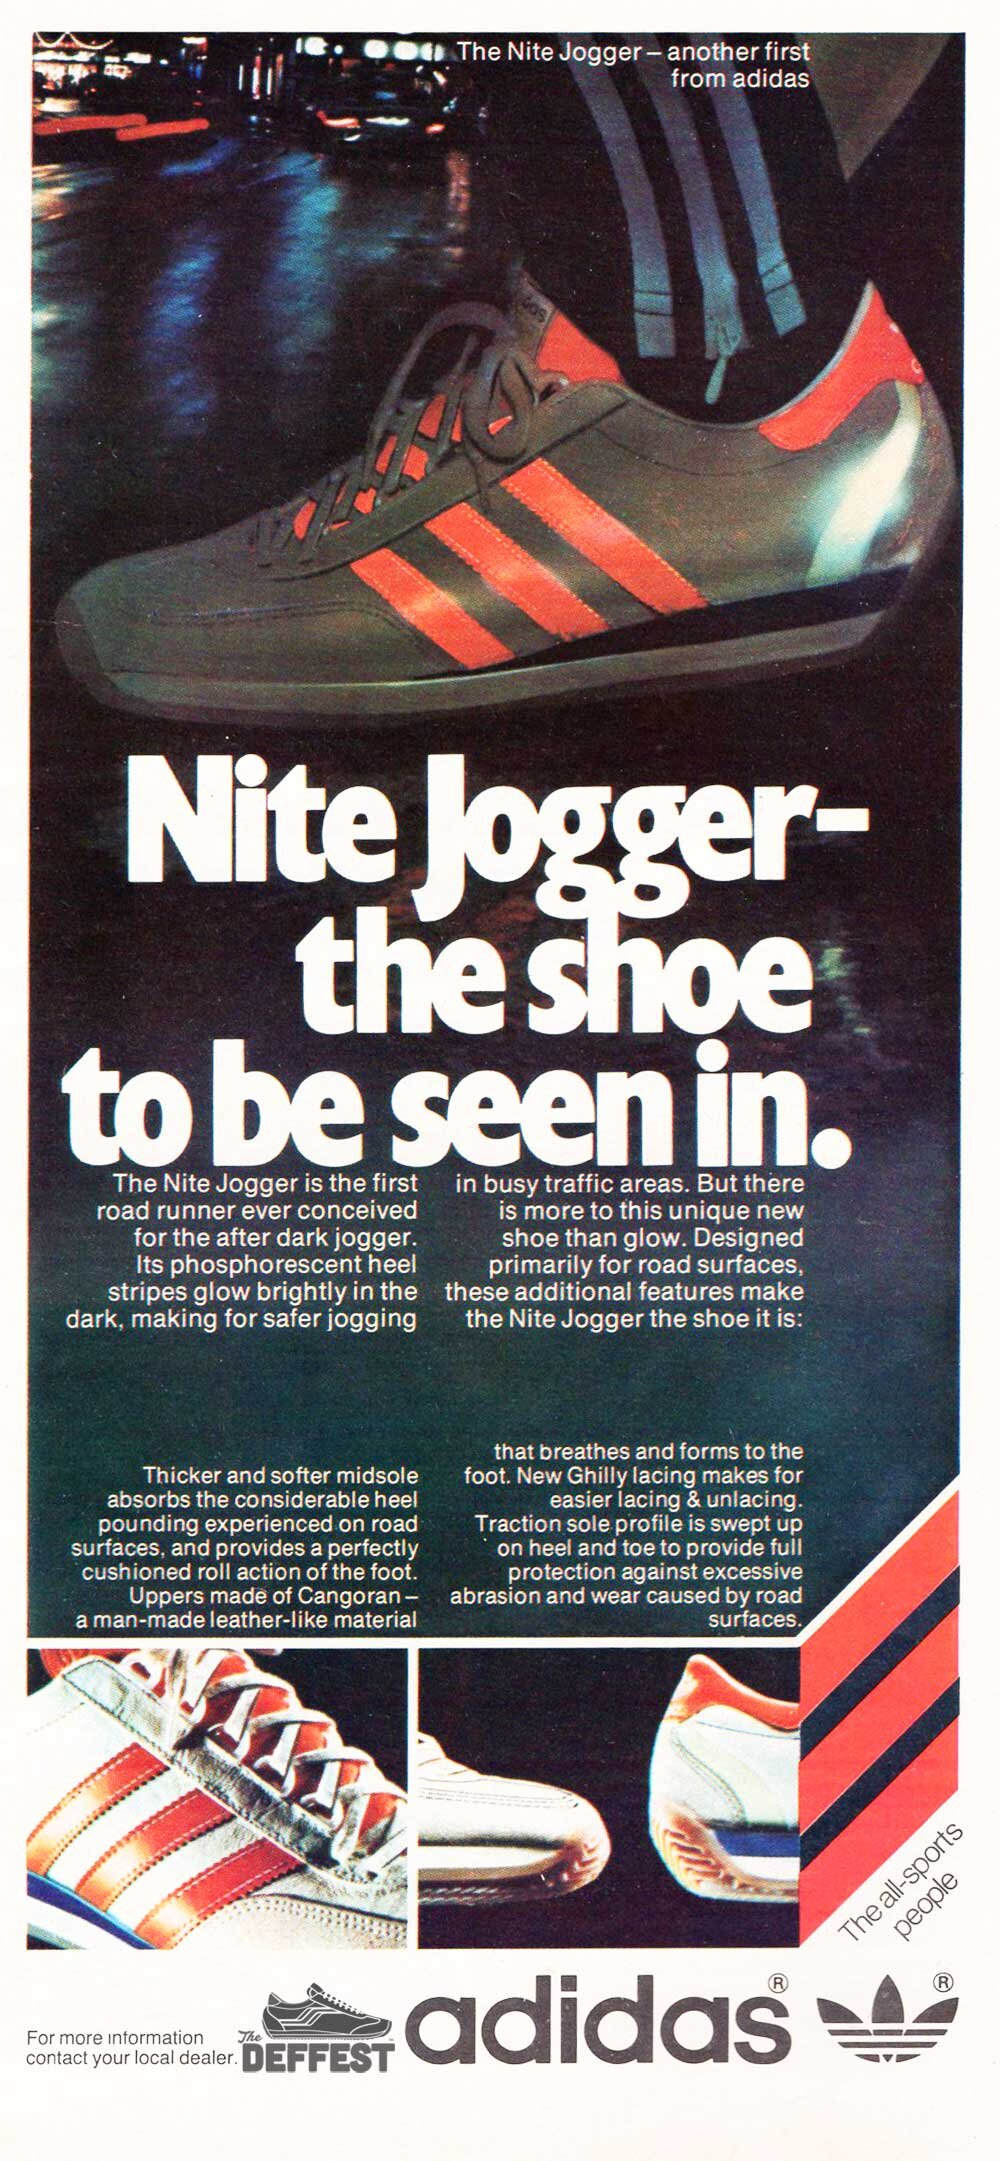 Adidas Running Shoes The Deffest A Vintage And Retro Sneaker Blog Vintage Ads